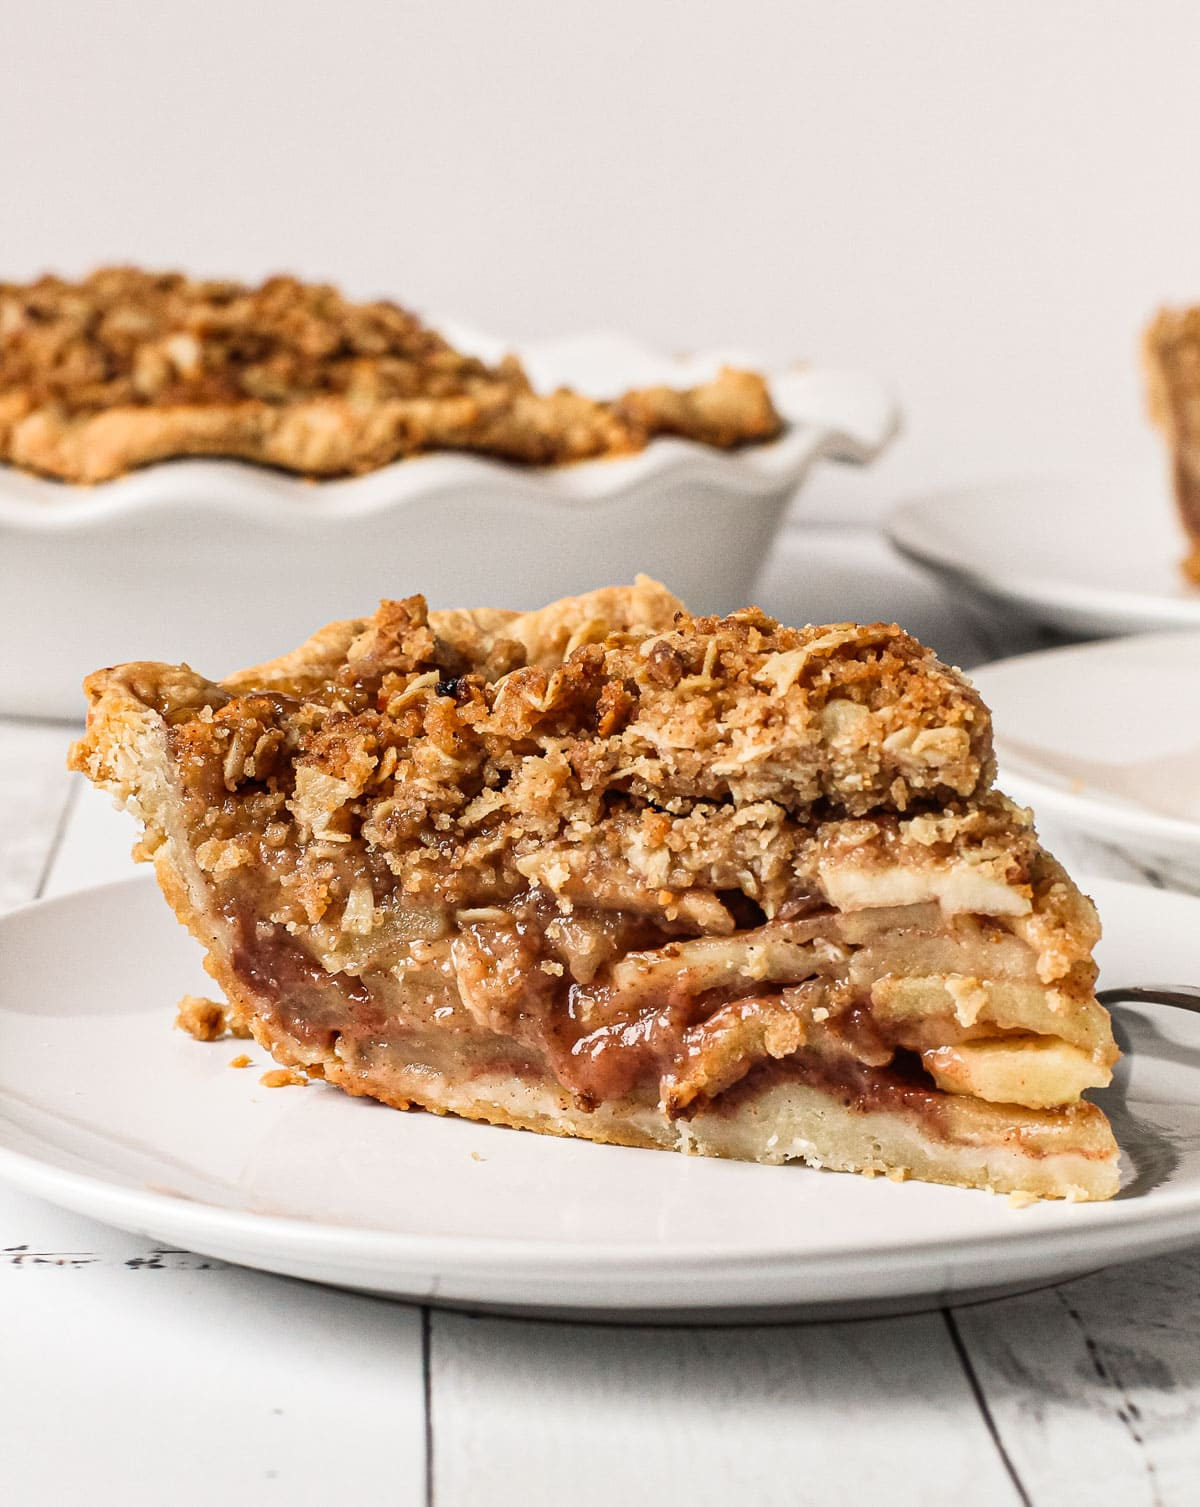 A slice of apple crumb pie on a plate.